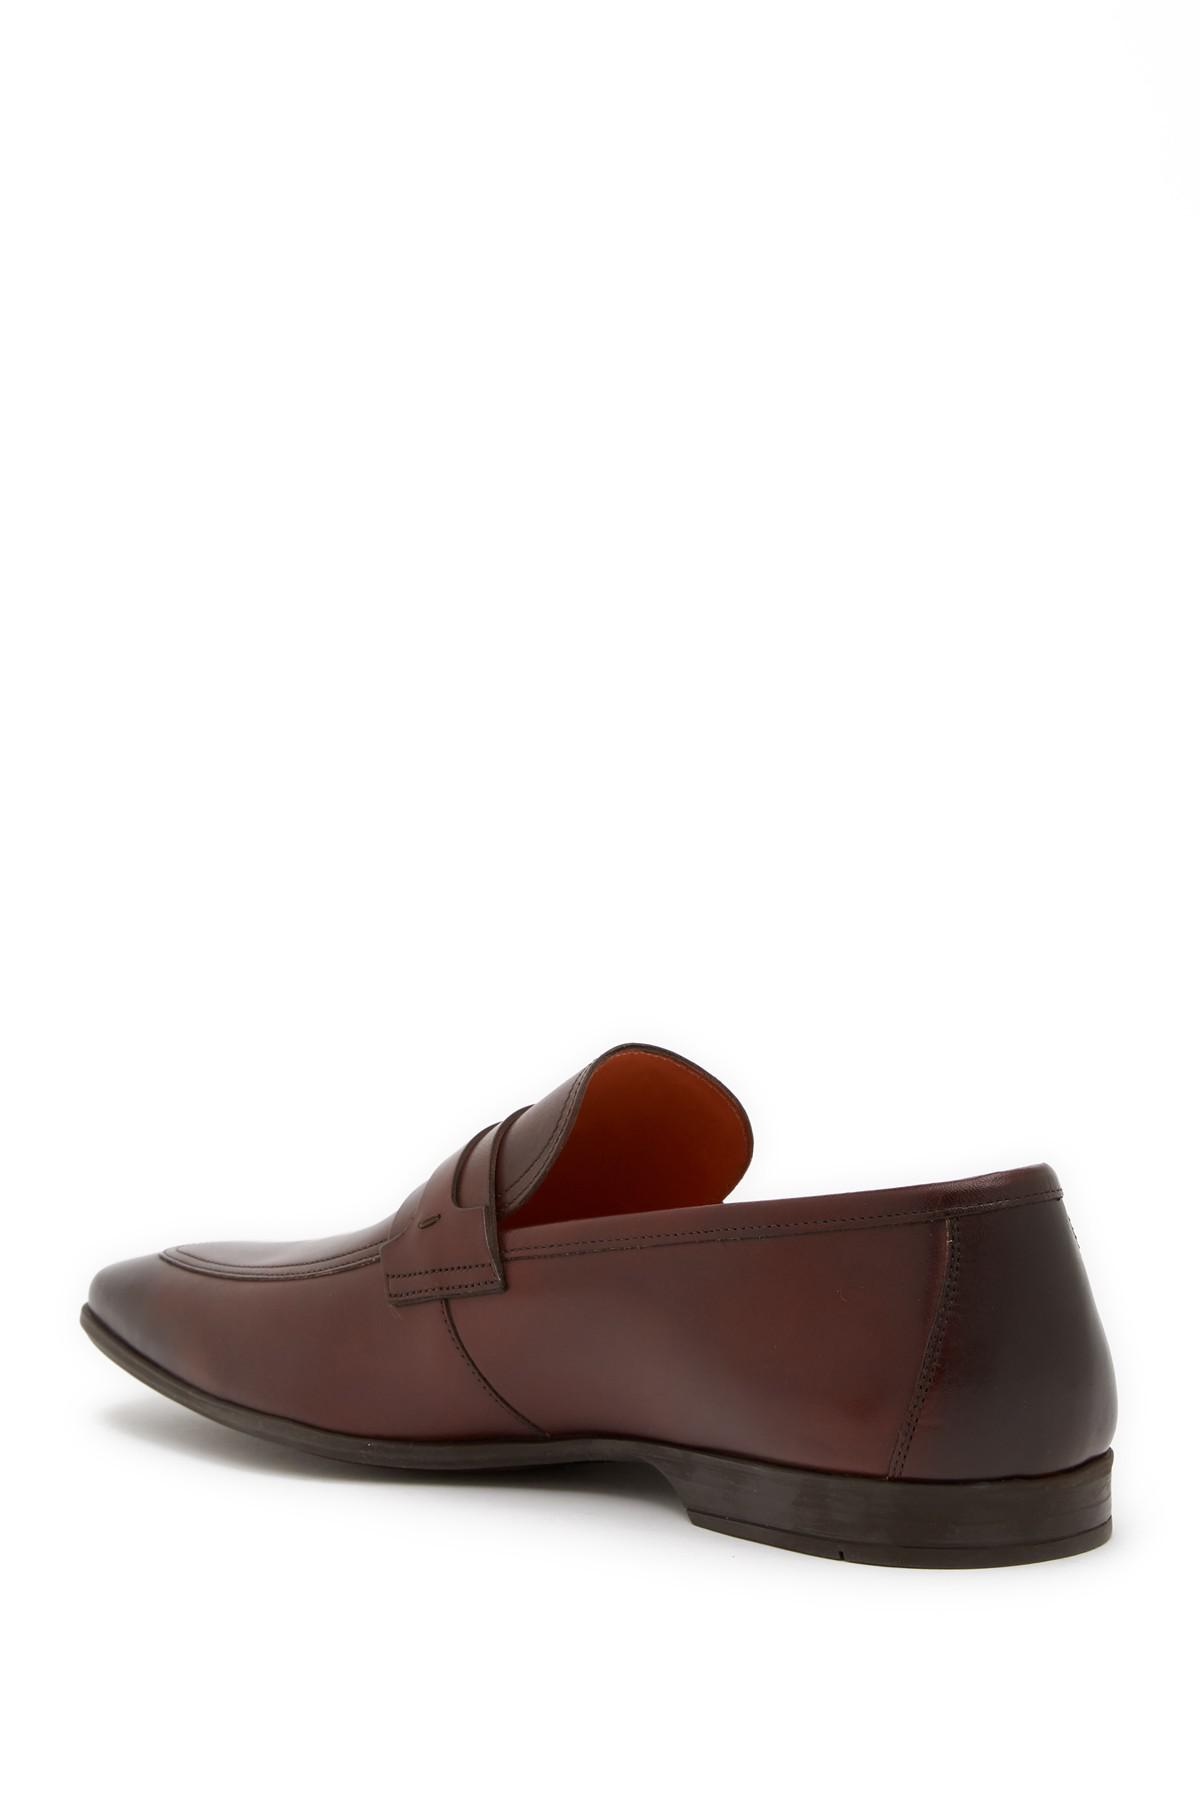 3e4ee417e39 Lyst - Magnanni Meingo Bit Leather Loafer in Brown for Men